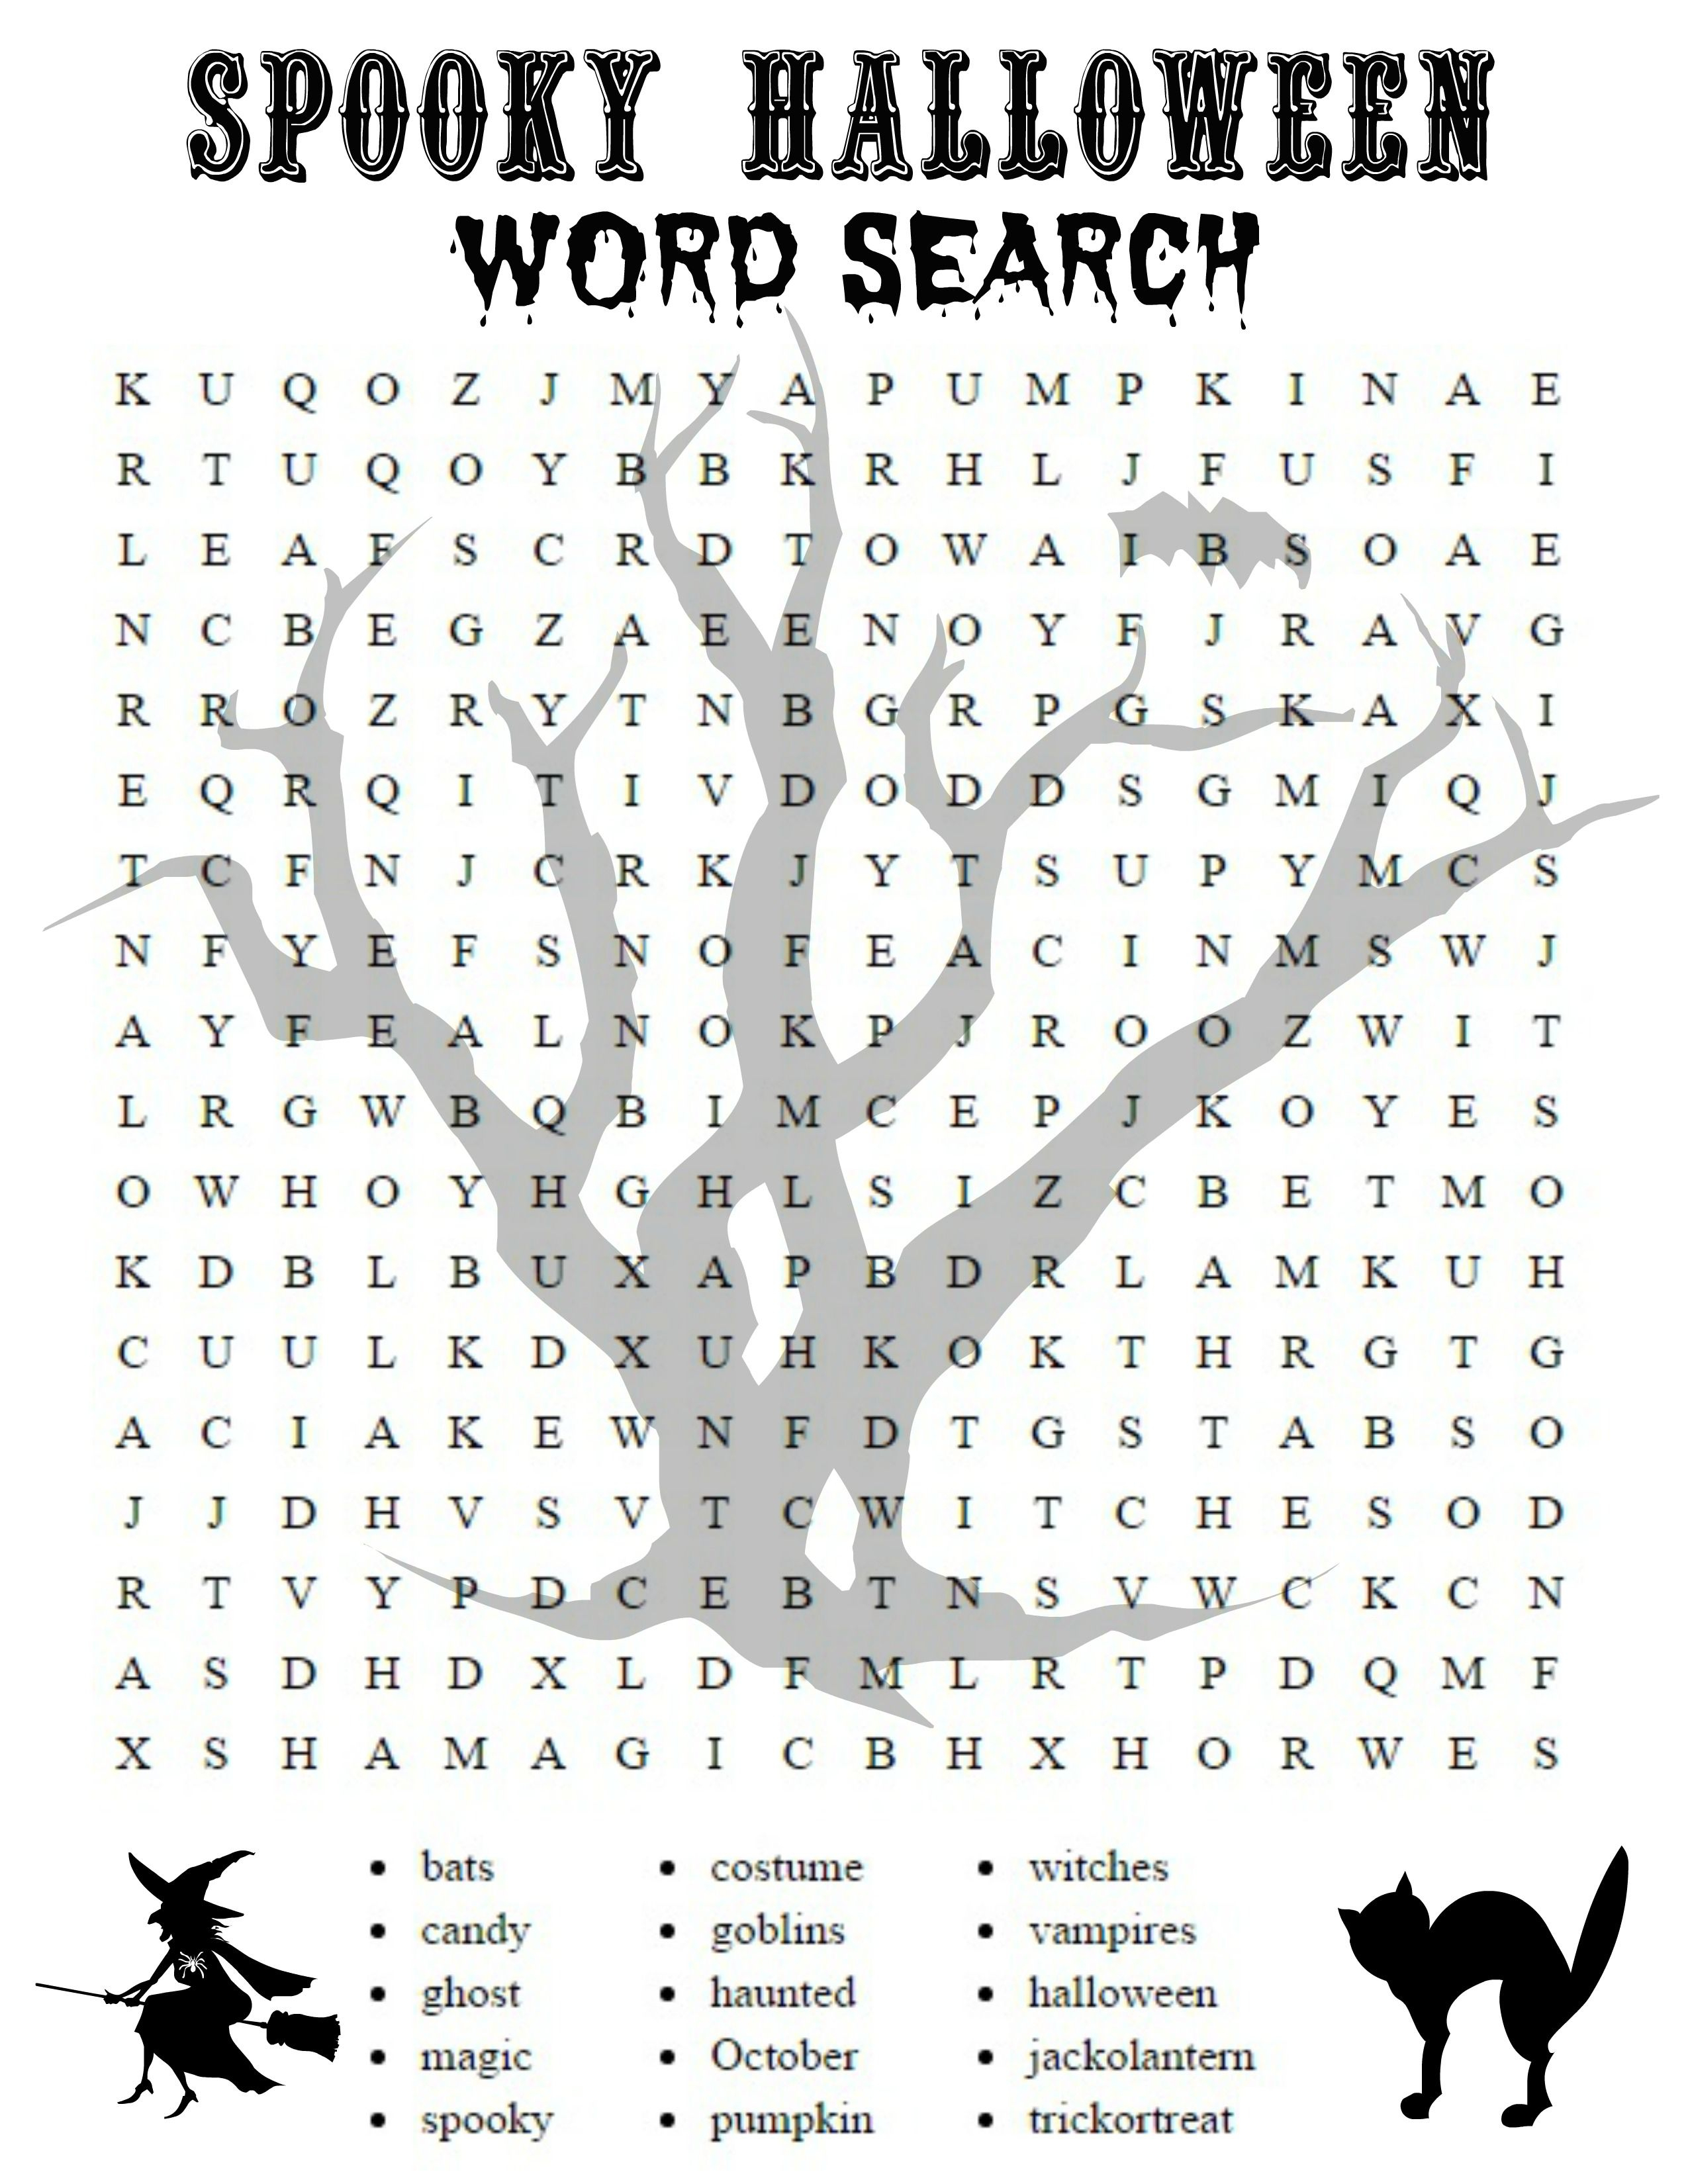 Afficher L'image D'origine | Halloween | Pinterest | Halloween - Free Printable Halloween Word Search Puzzles